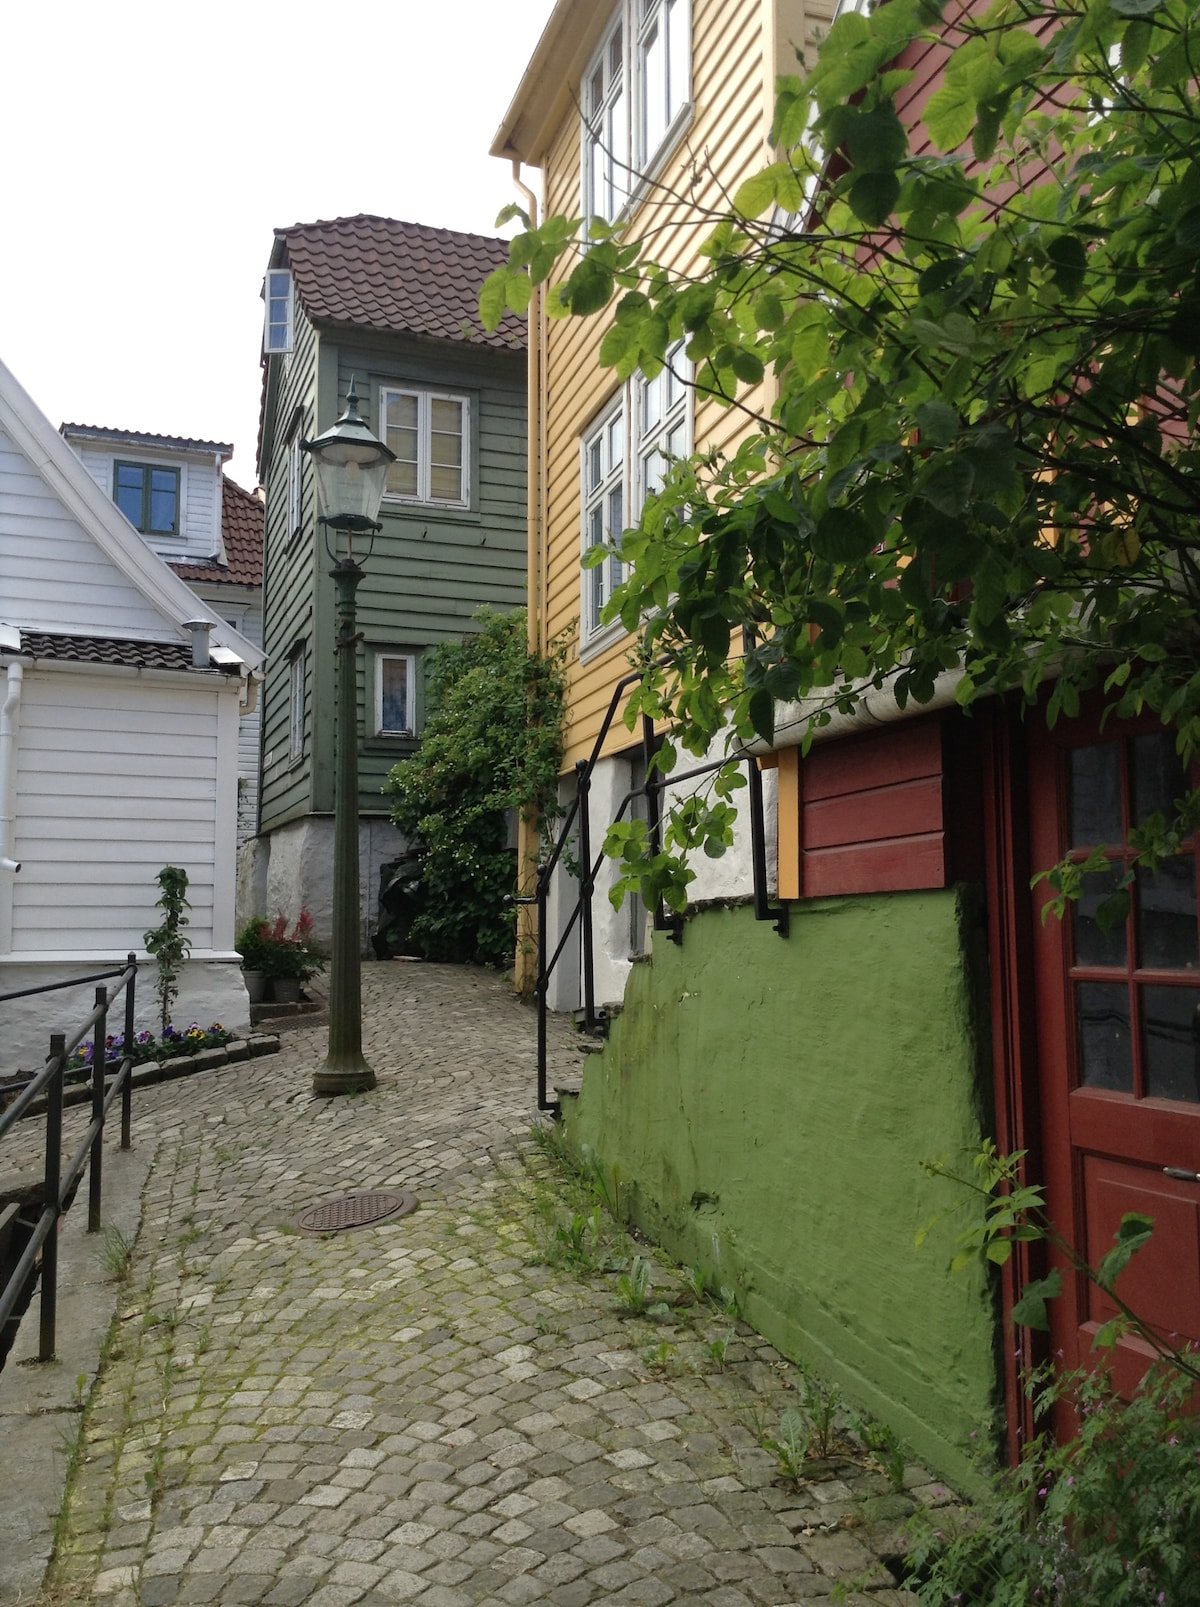 The small cosy street next to the house